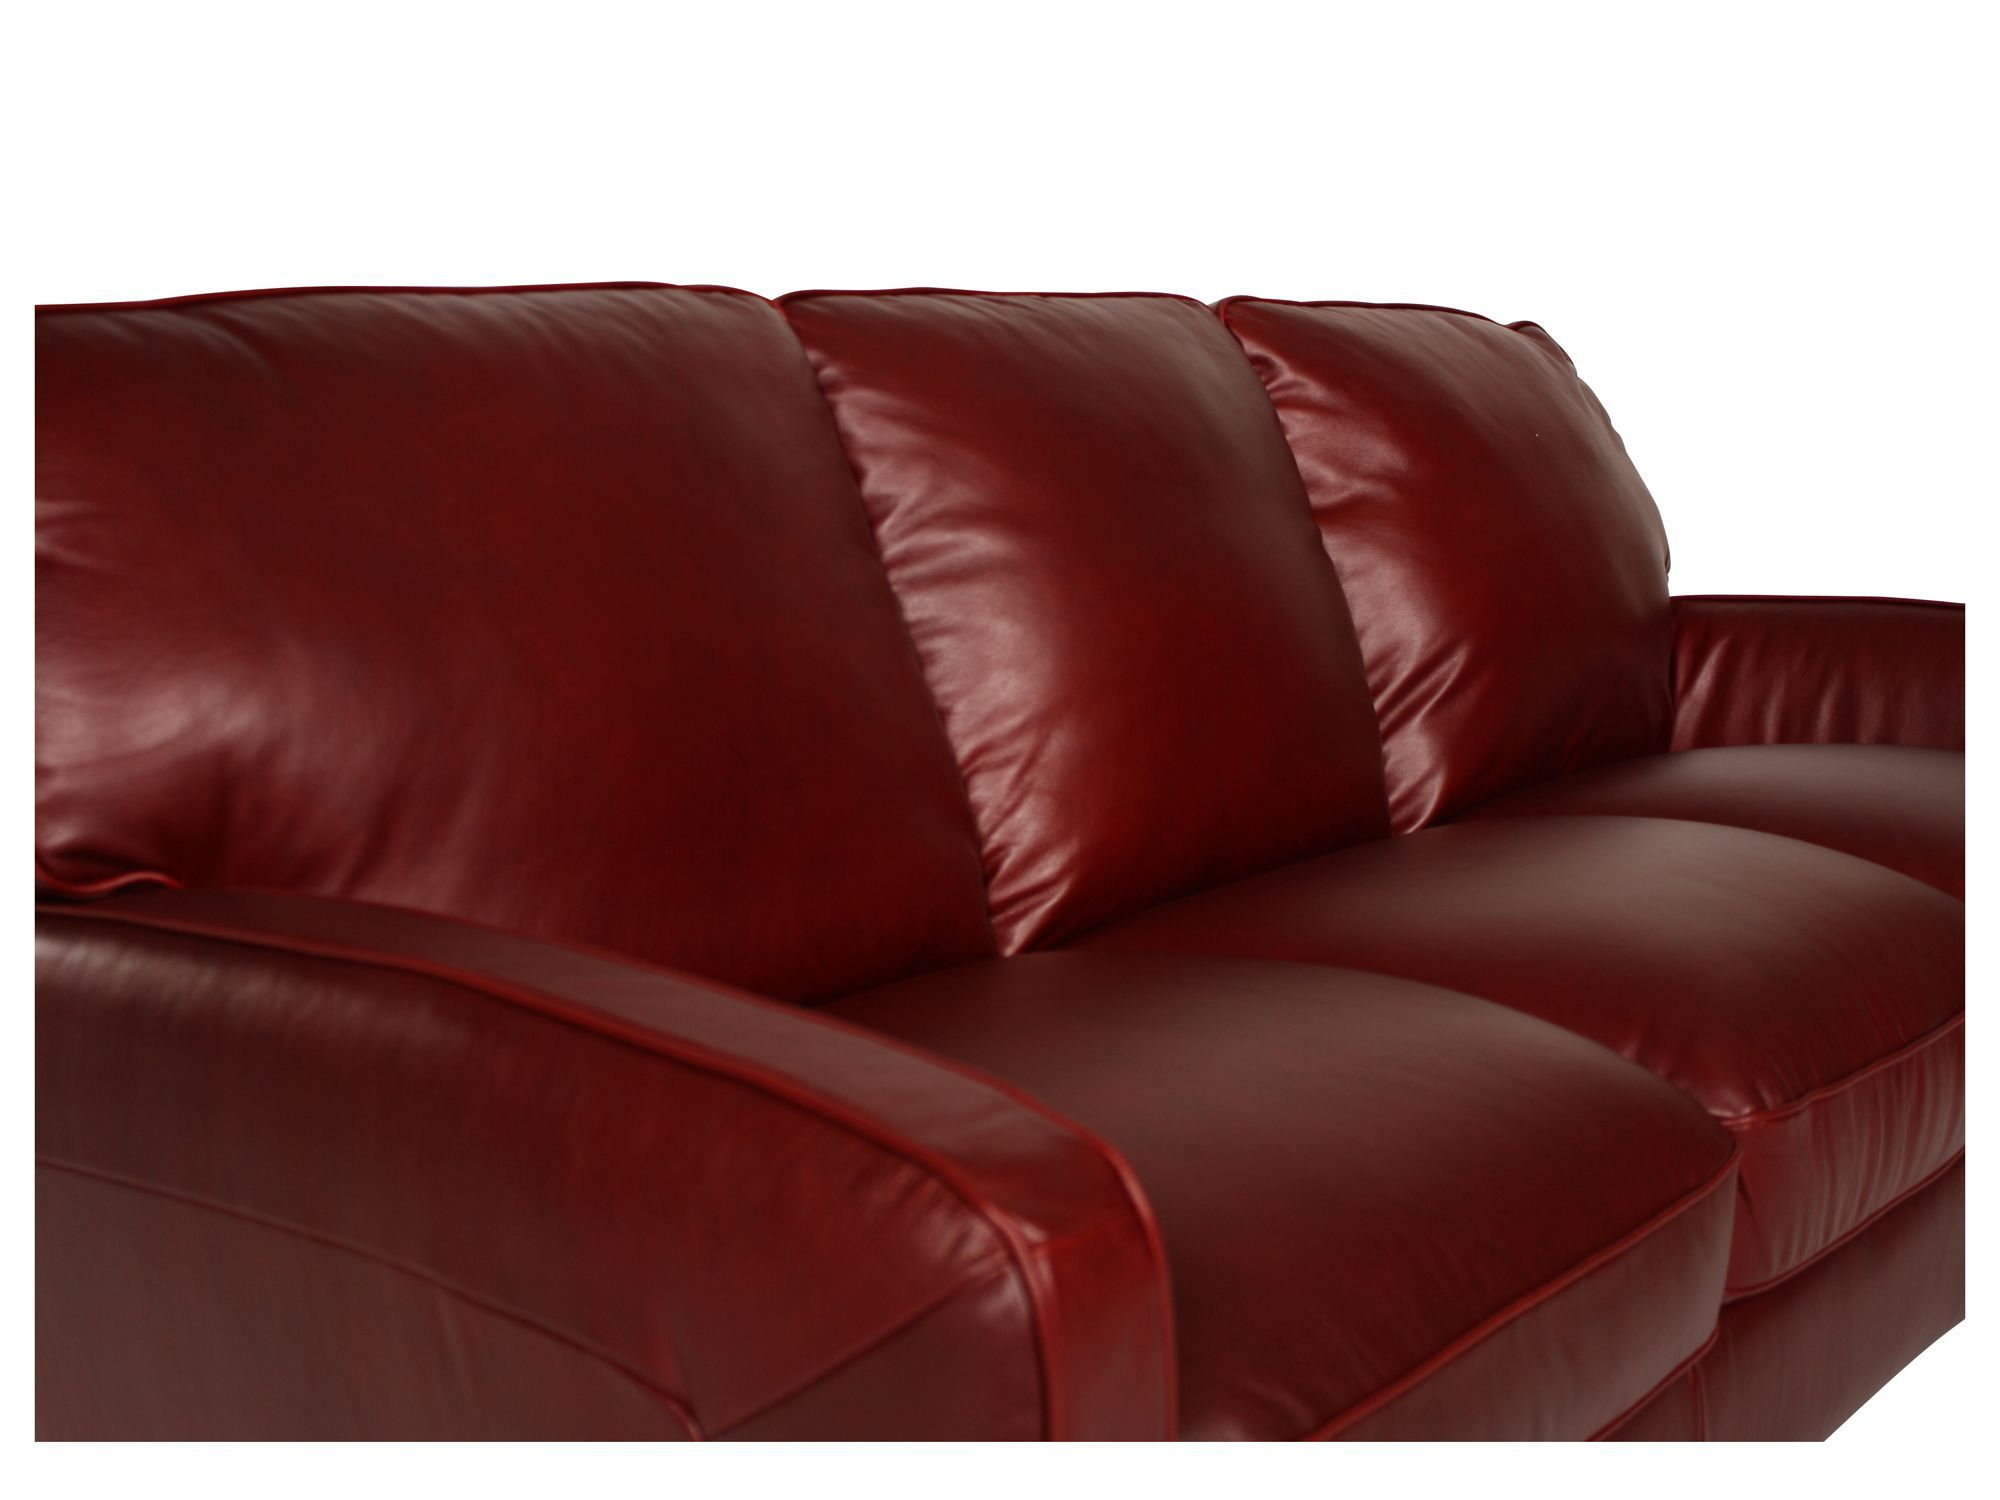 natuzzi red leather sofa and chair comfort couch black set deep shades of grey room